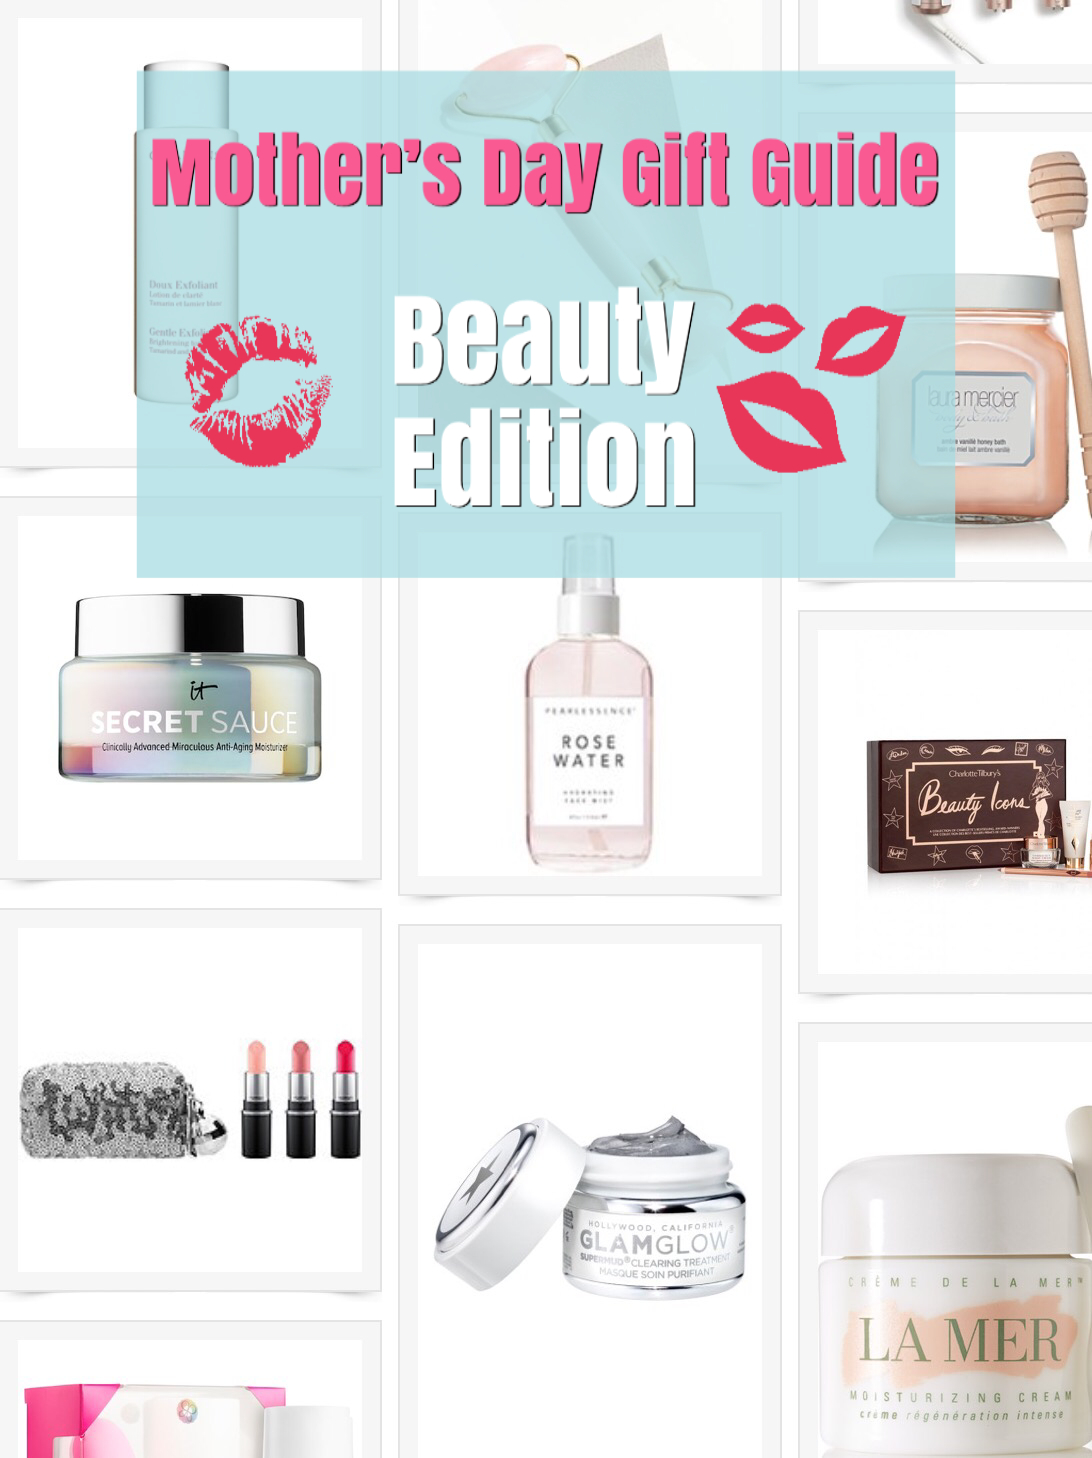 Mother's Day Gift Guide For Beauty Guru Moms and Glam-mas.  Makeup and skincare products to make mom feel as beautiful as she already is.